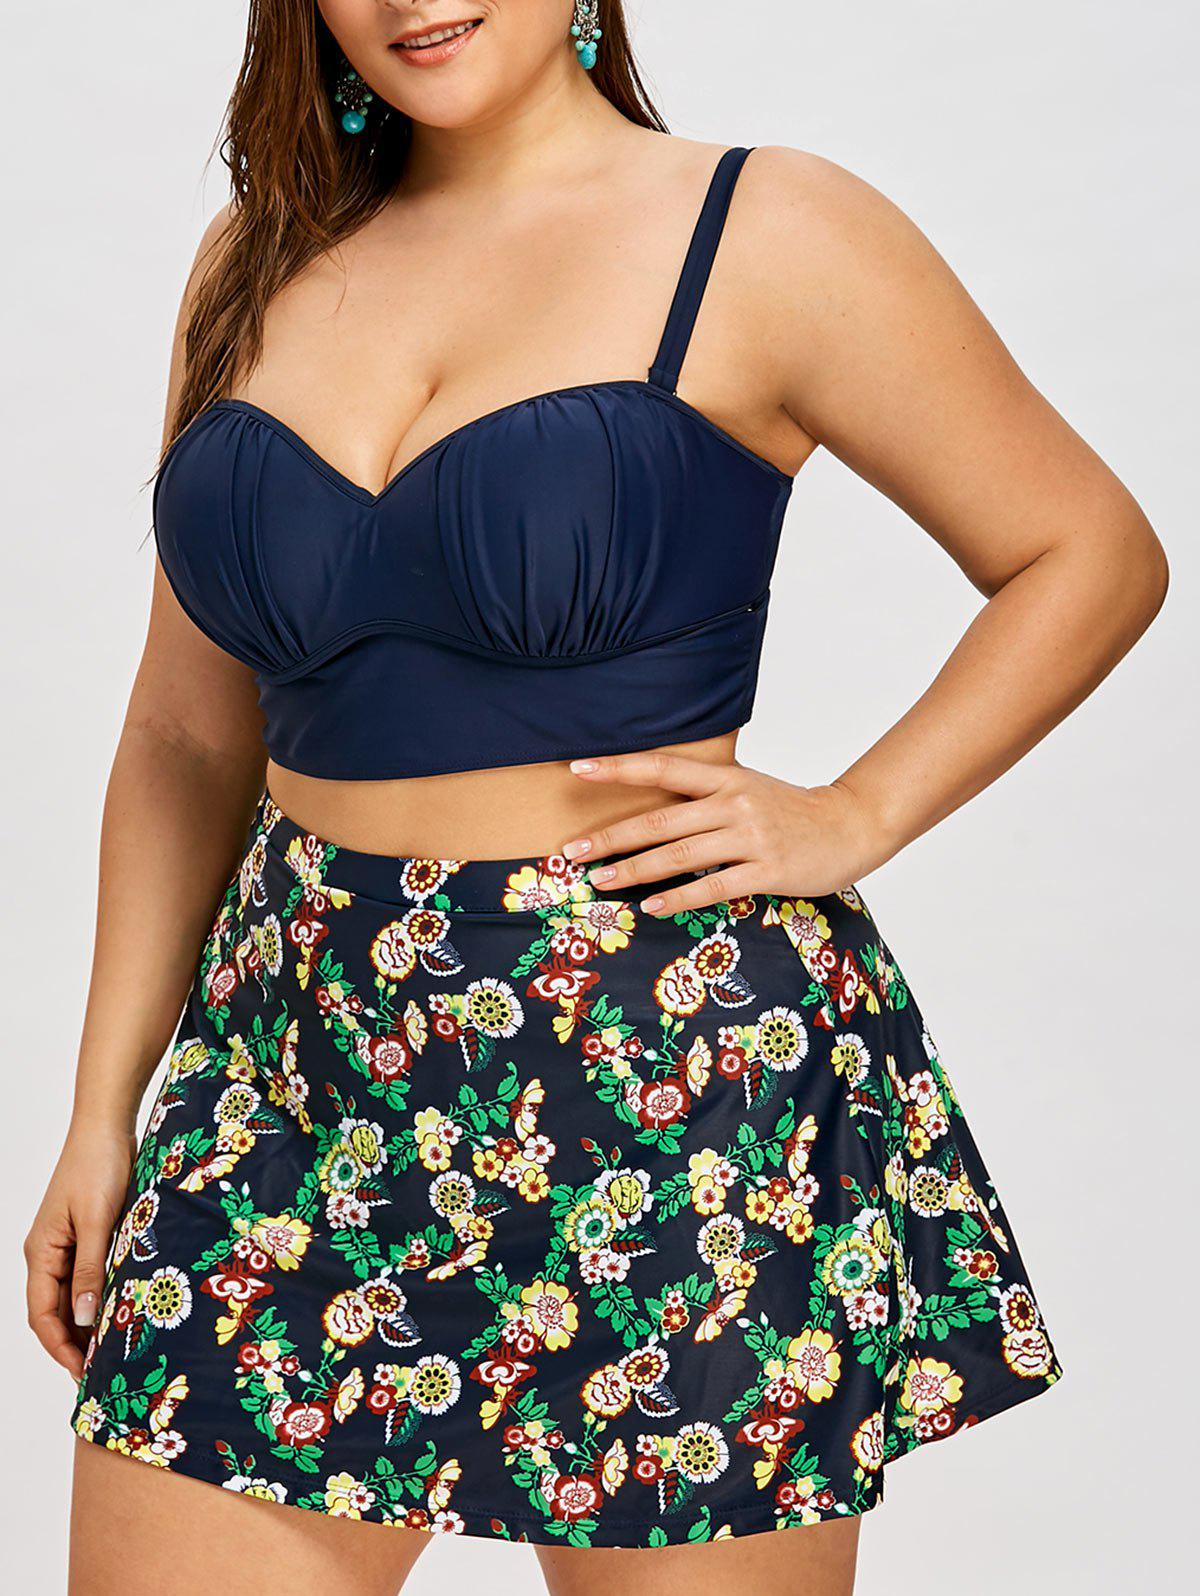 Skirted Plus Size Push Up Floral Bikini - CERULEAN 2XL